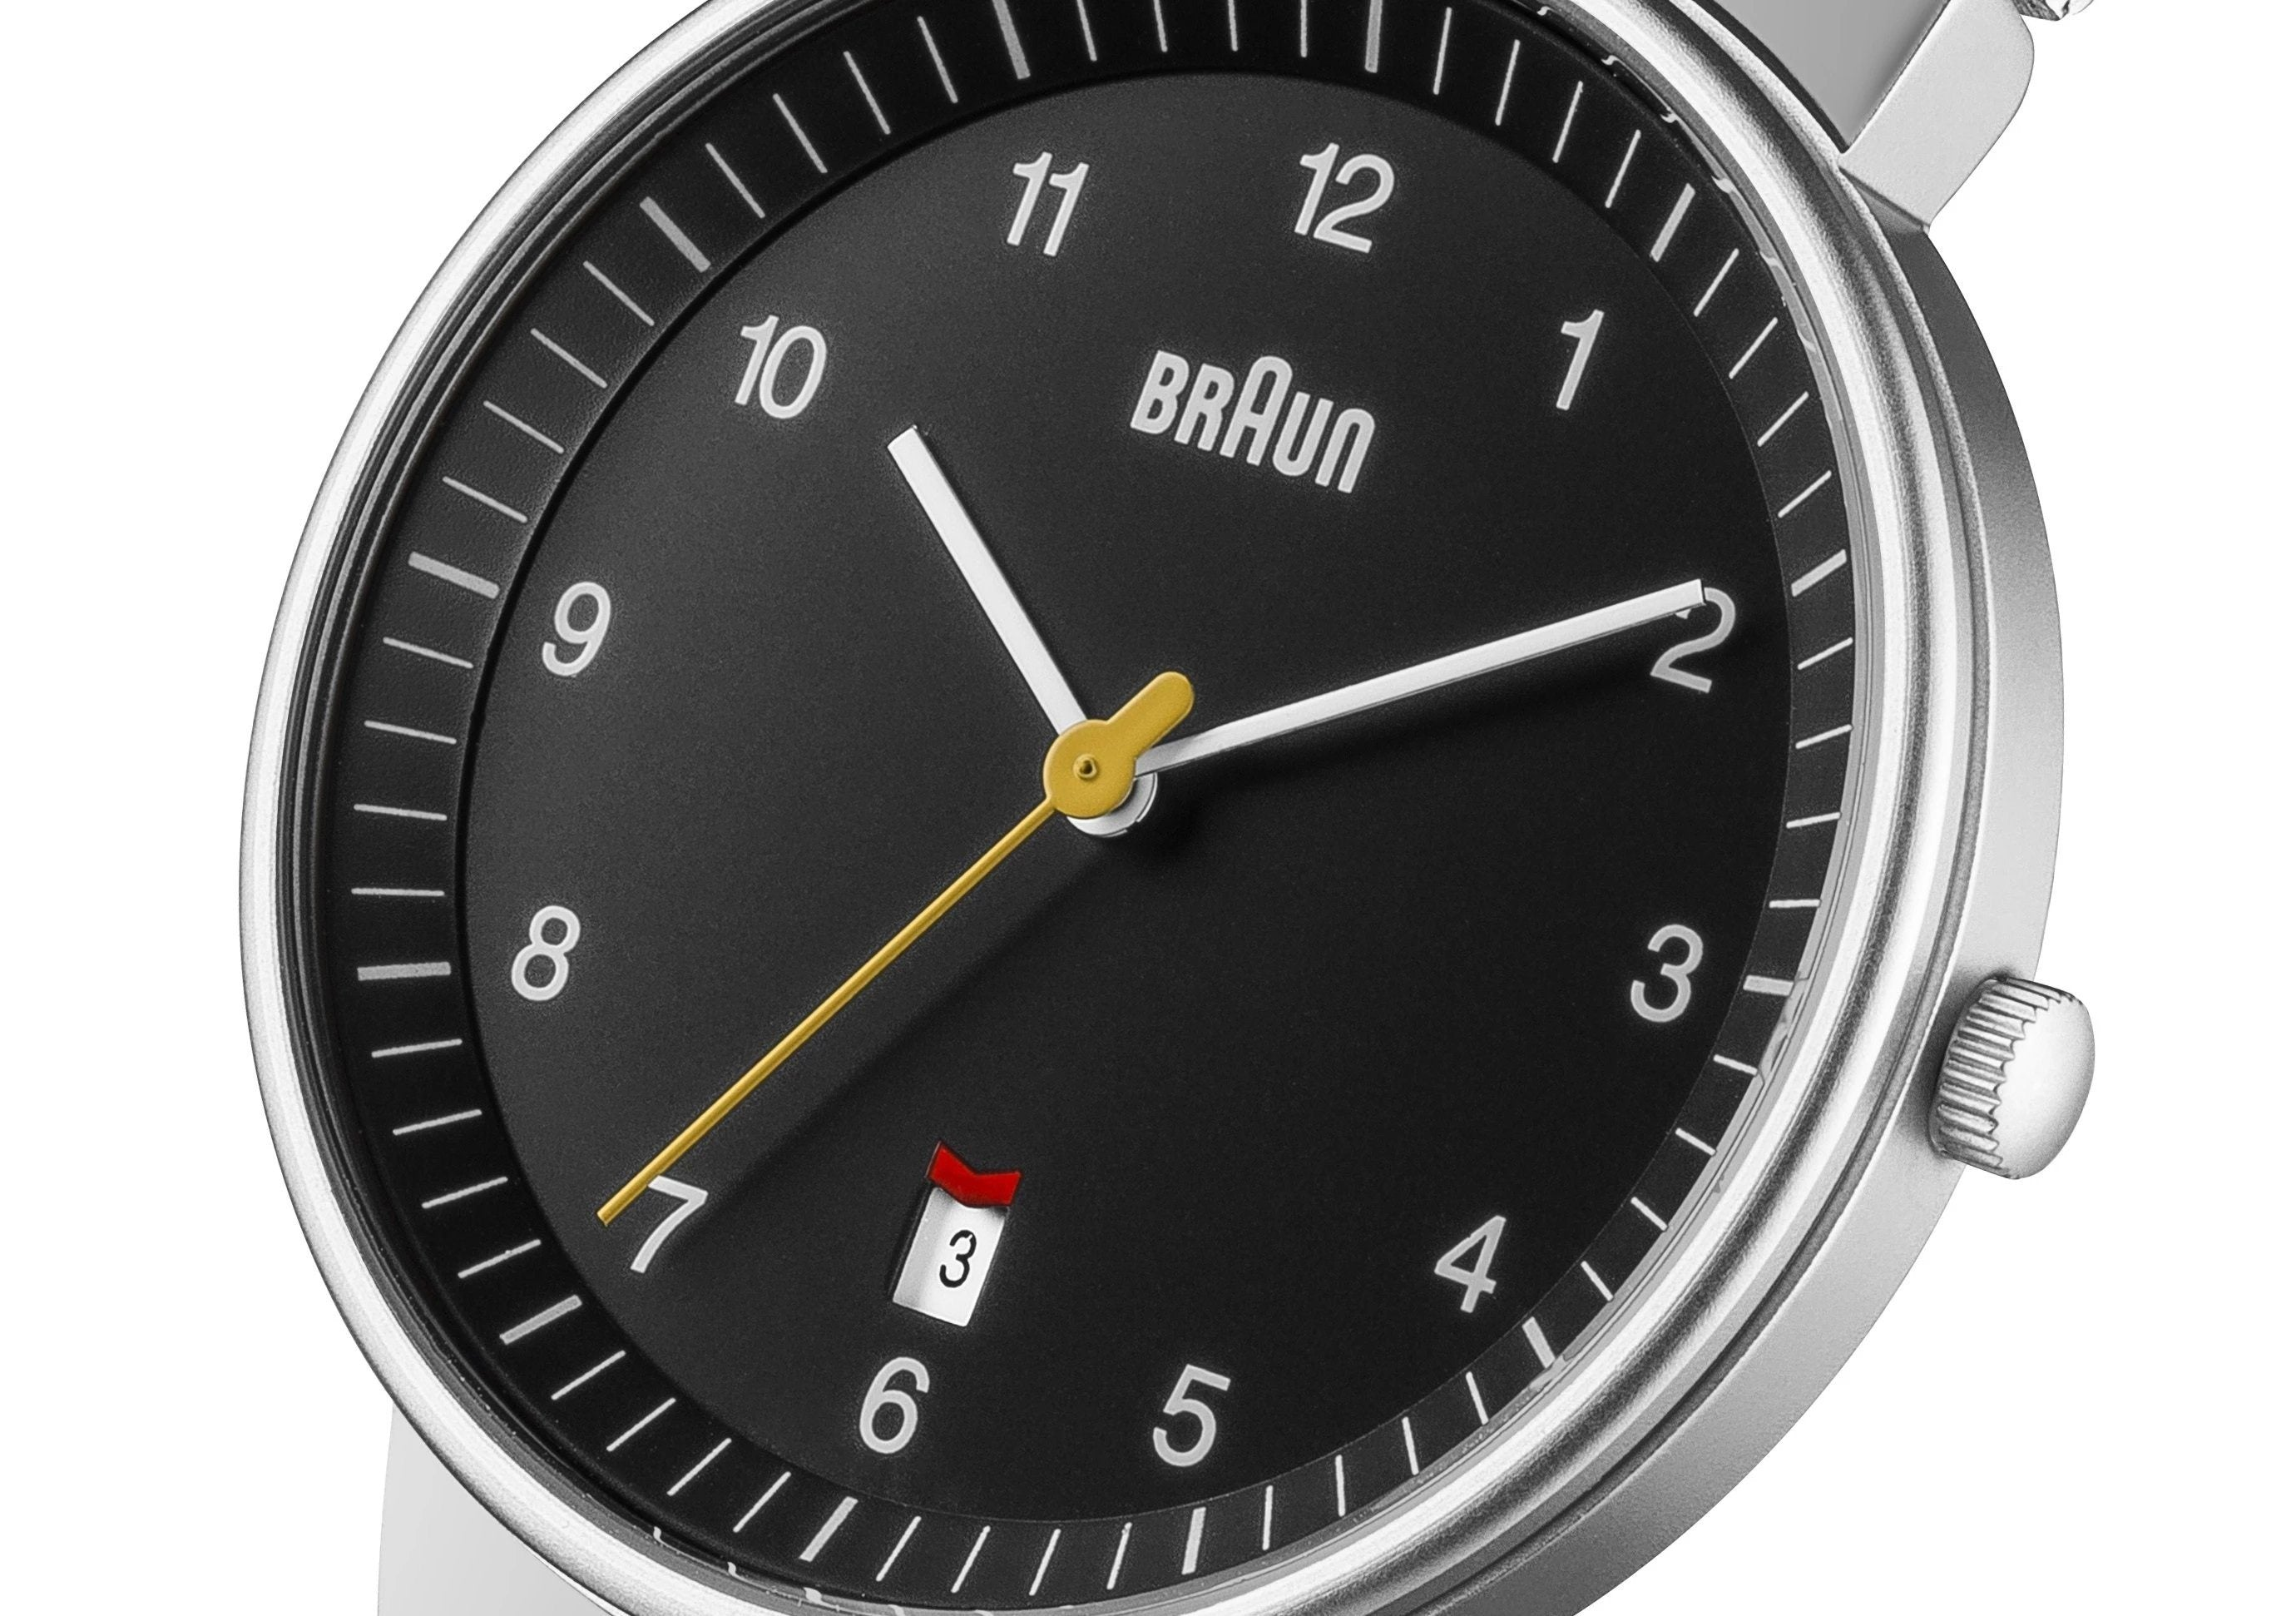 Braun BN-32BKSLMHG Men's Black dial, Stainless Steel Mesh Band, 3 hands with Date